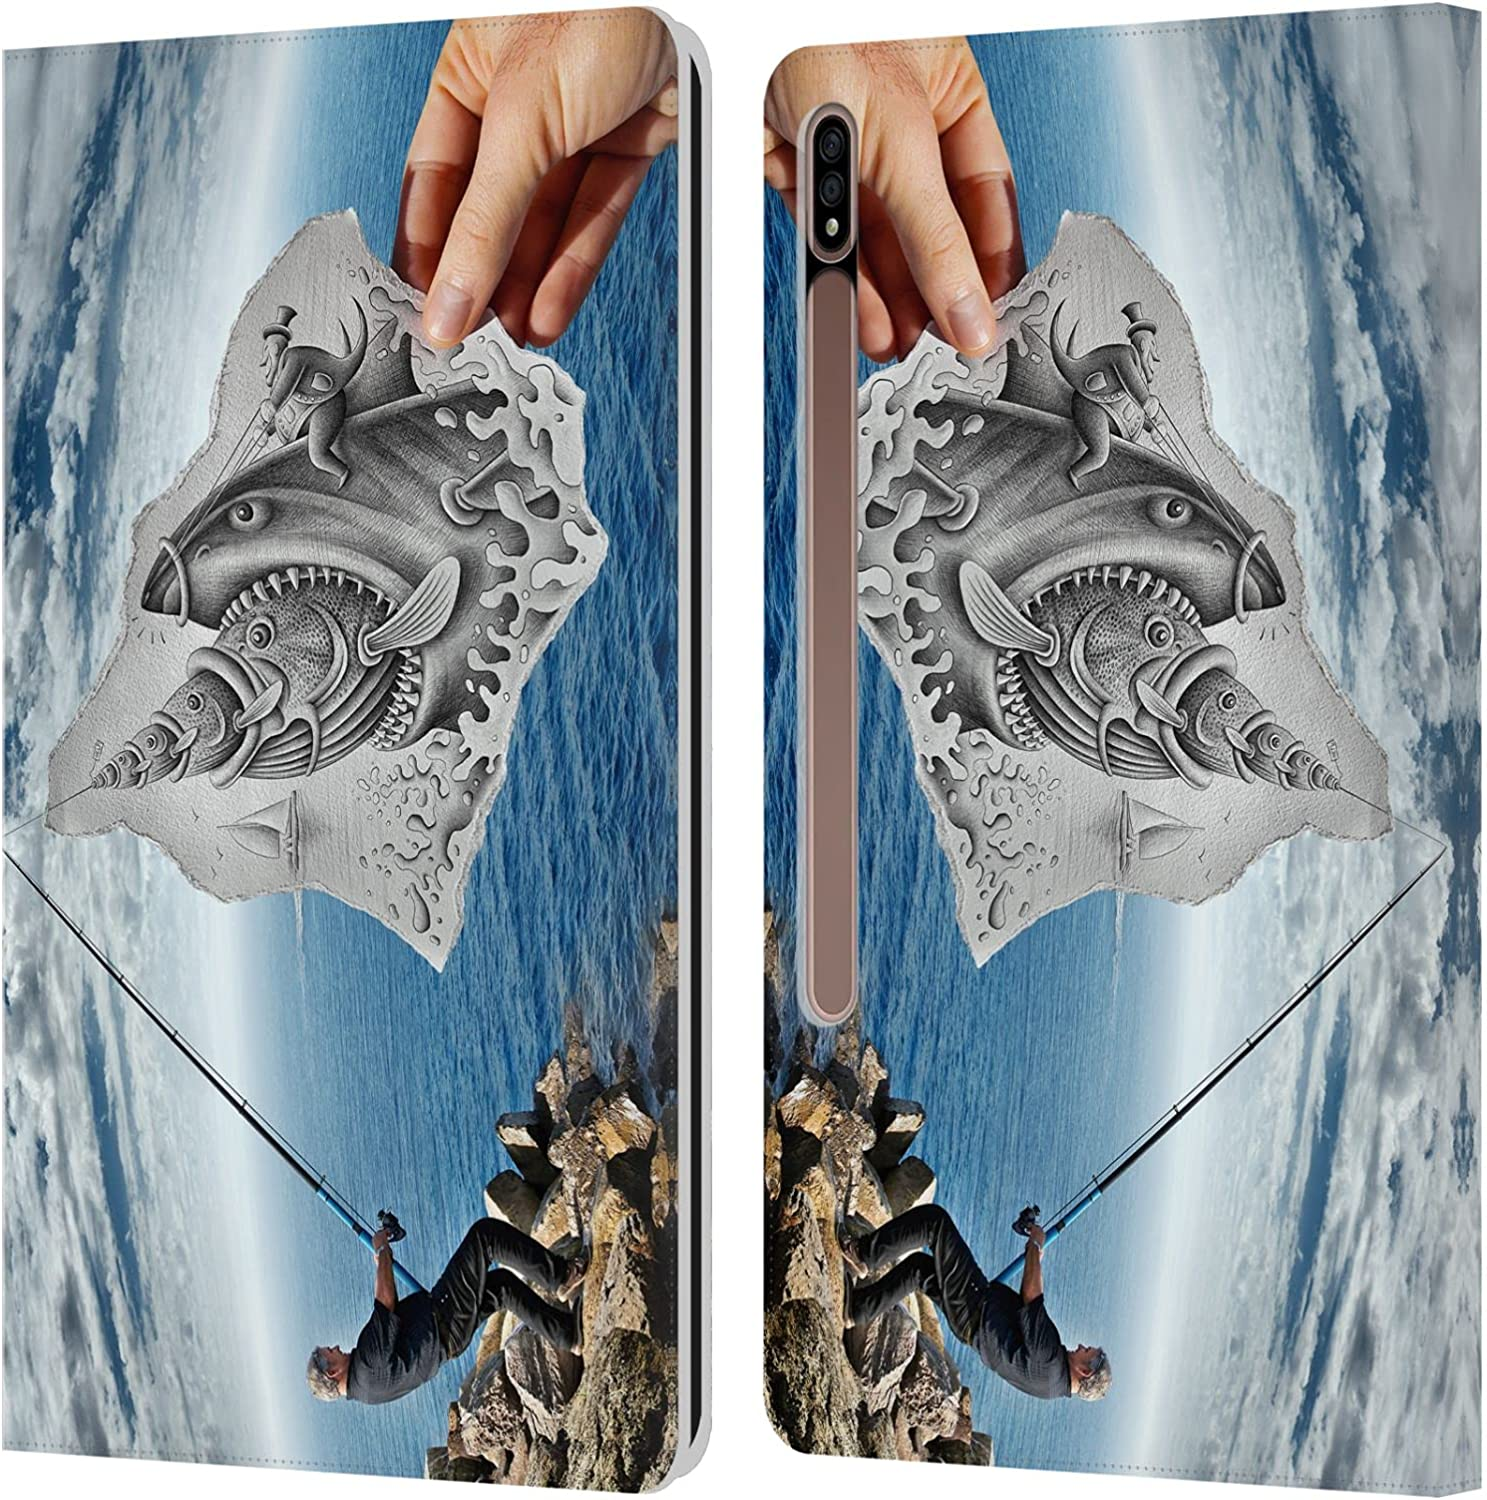 Head Case Designs Officially Licensed Pencil Ben Fishing V Max 82% OFF Heine Time sale